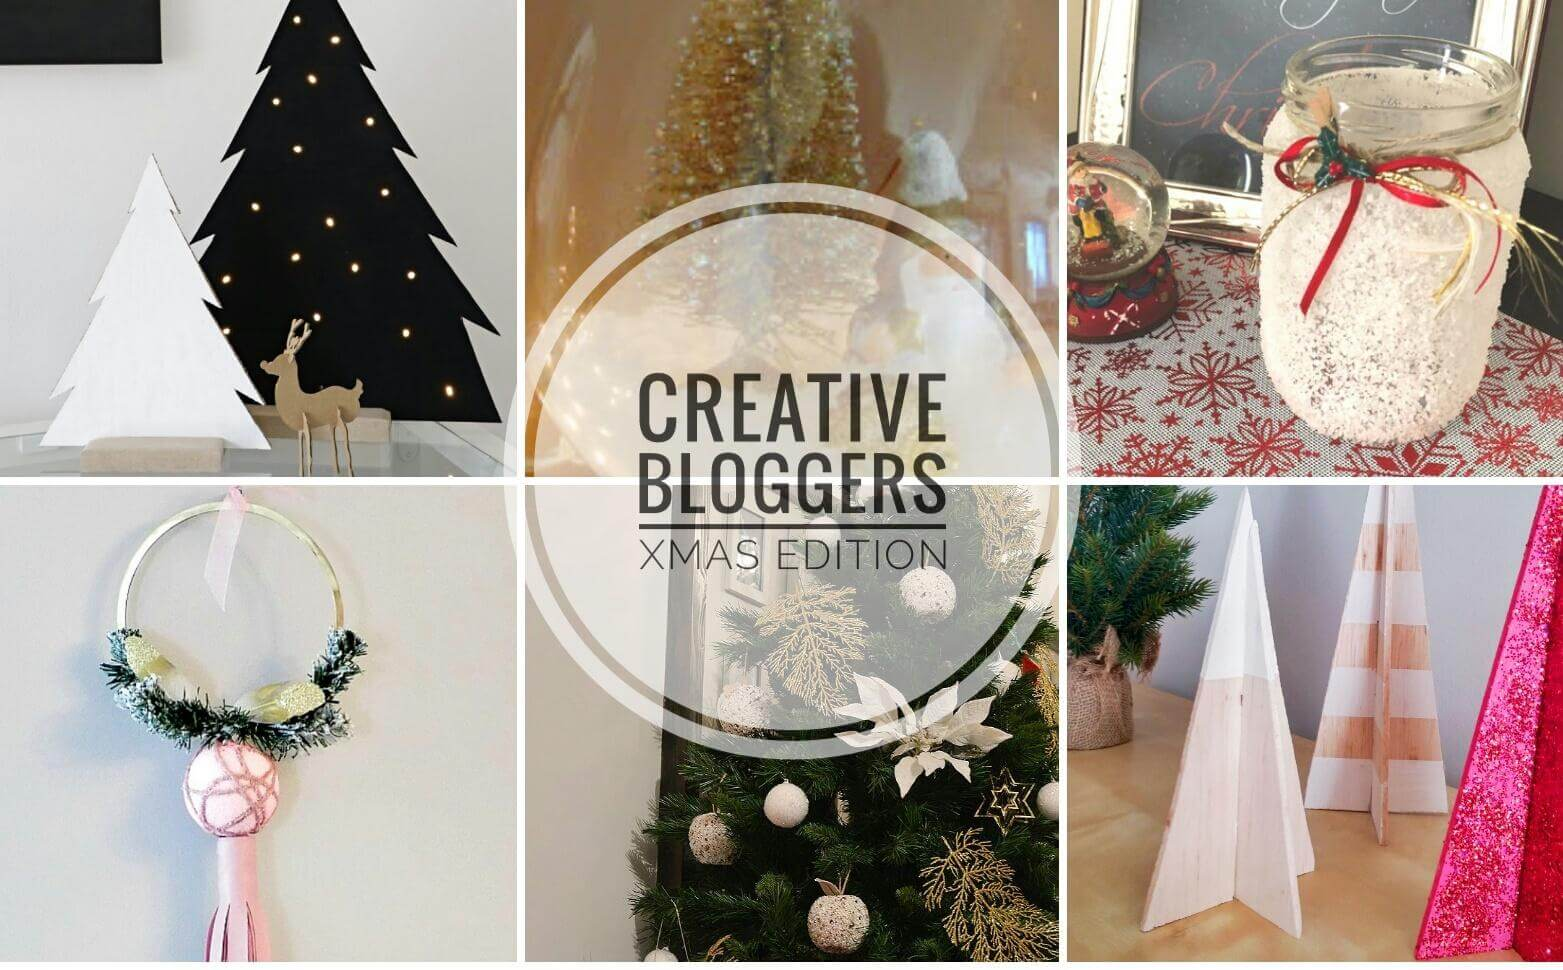 Creative Bloggers - After Christmas